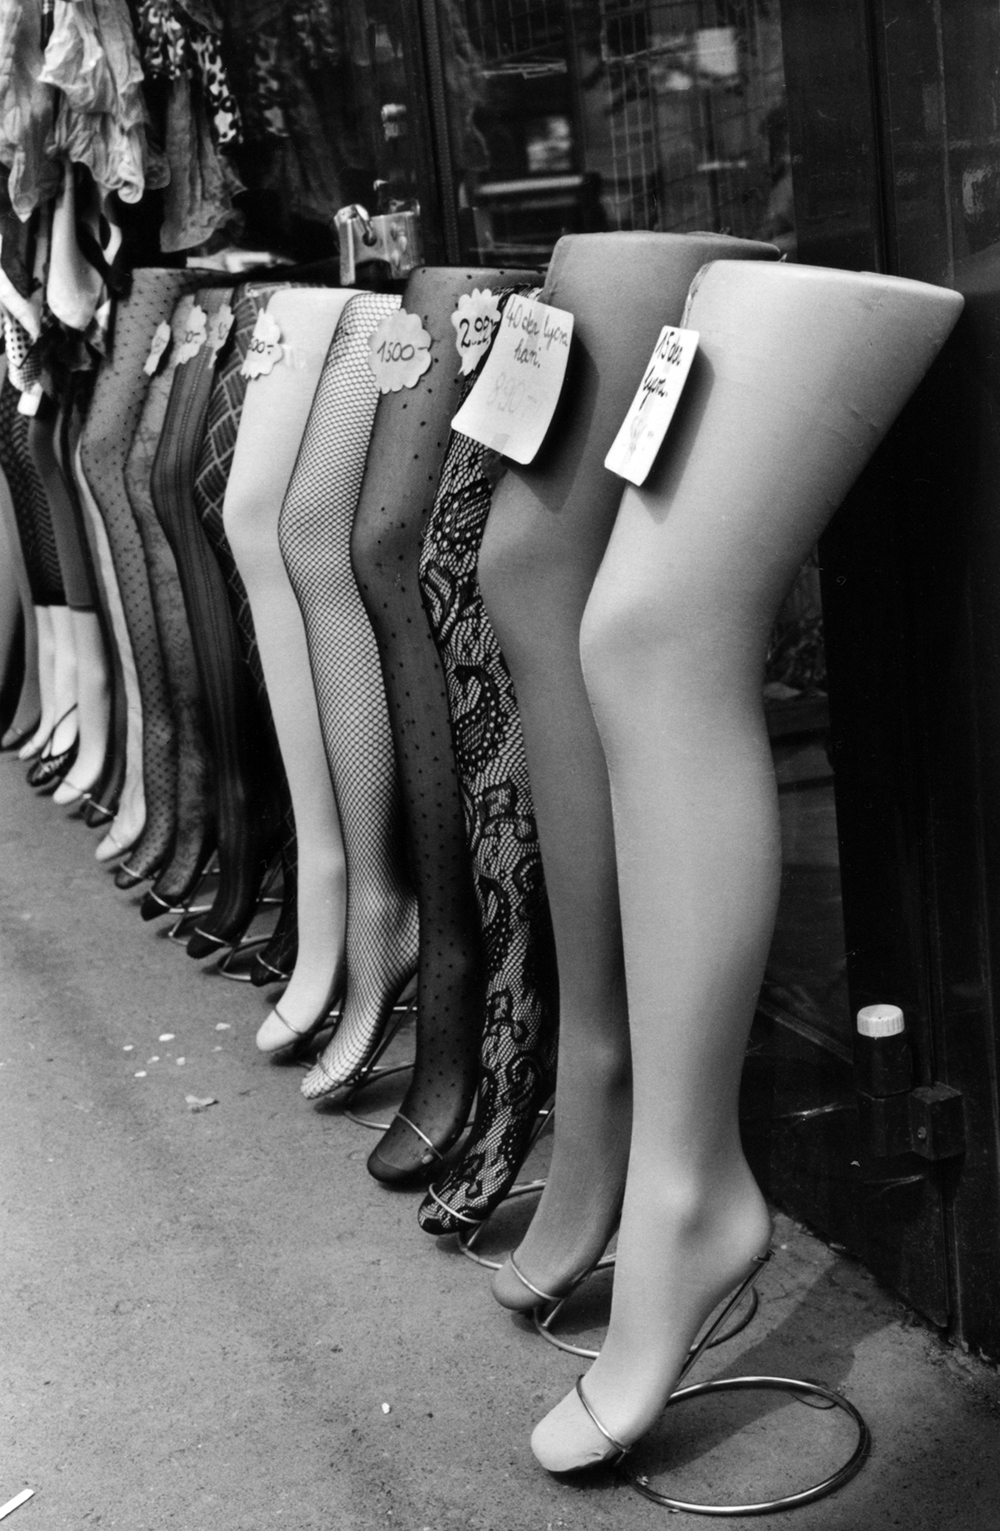 Legs 2, by Nicola Bensley